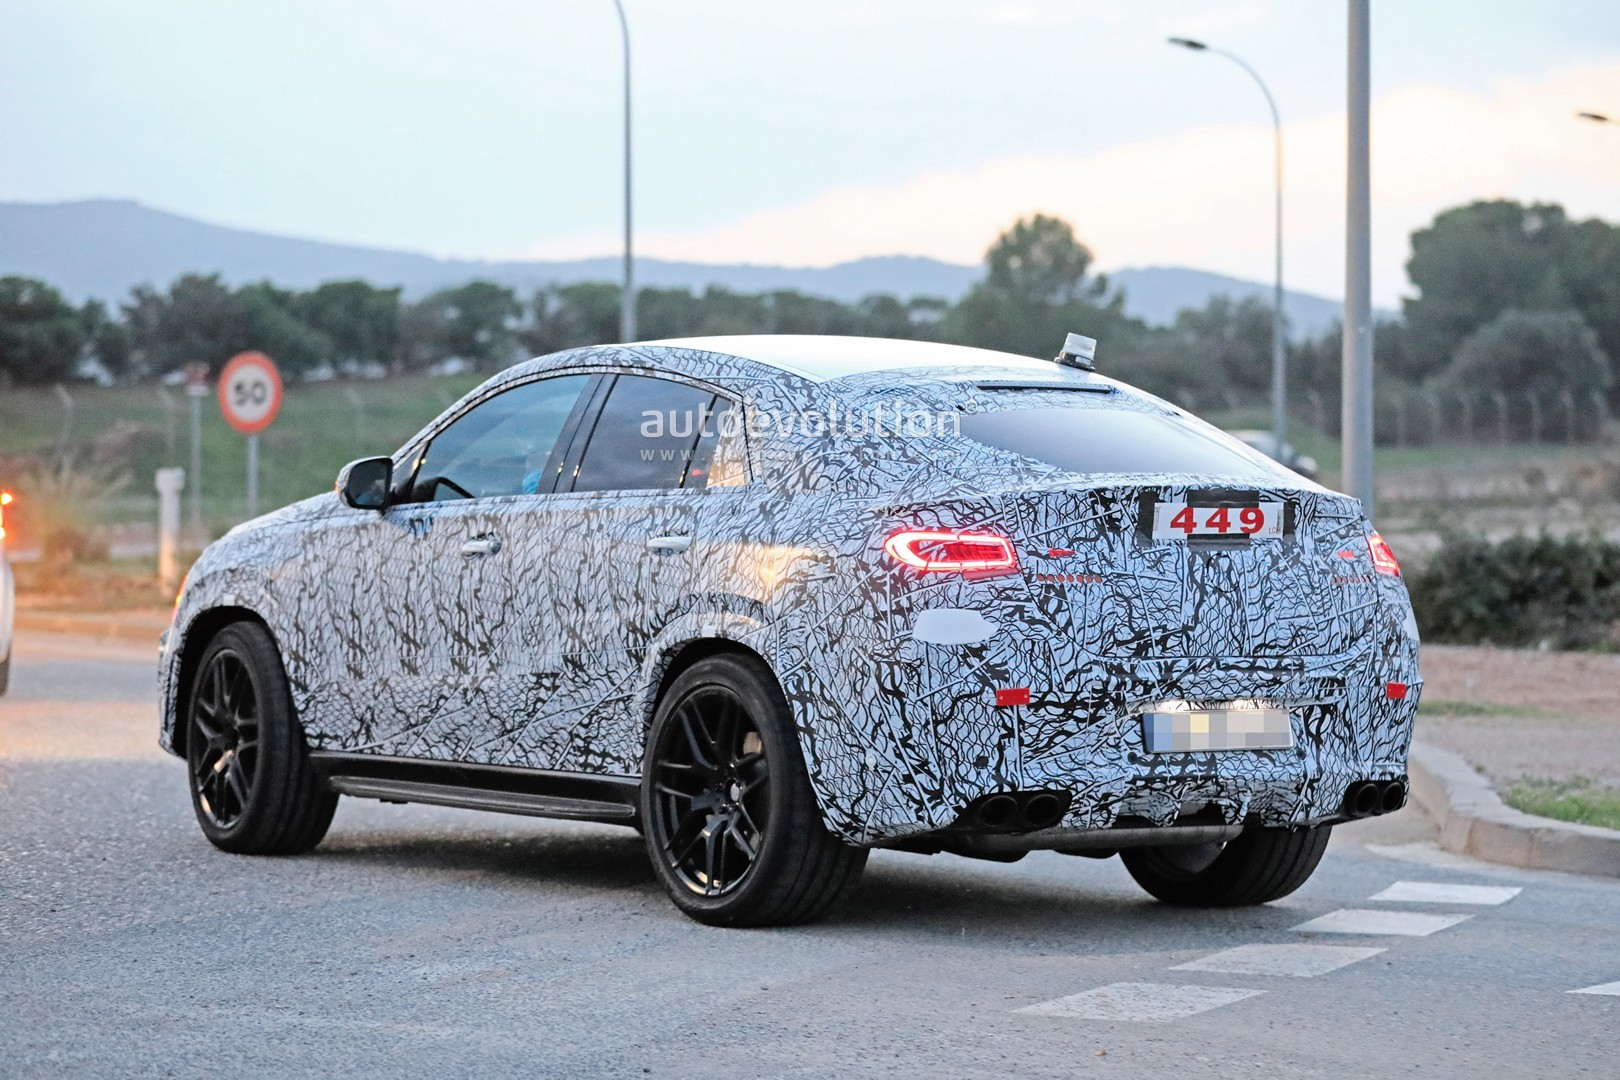 mercedes-a​mg-gle-53-​coupe-make​s-spyshot-​debut-with​-quad-exha​ust-tips_7